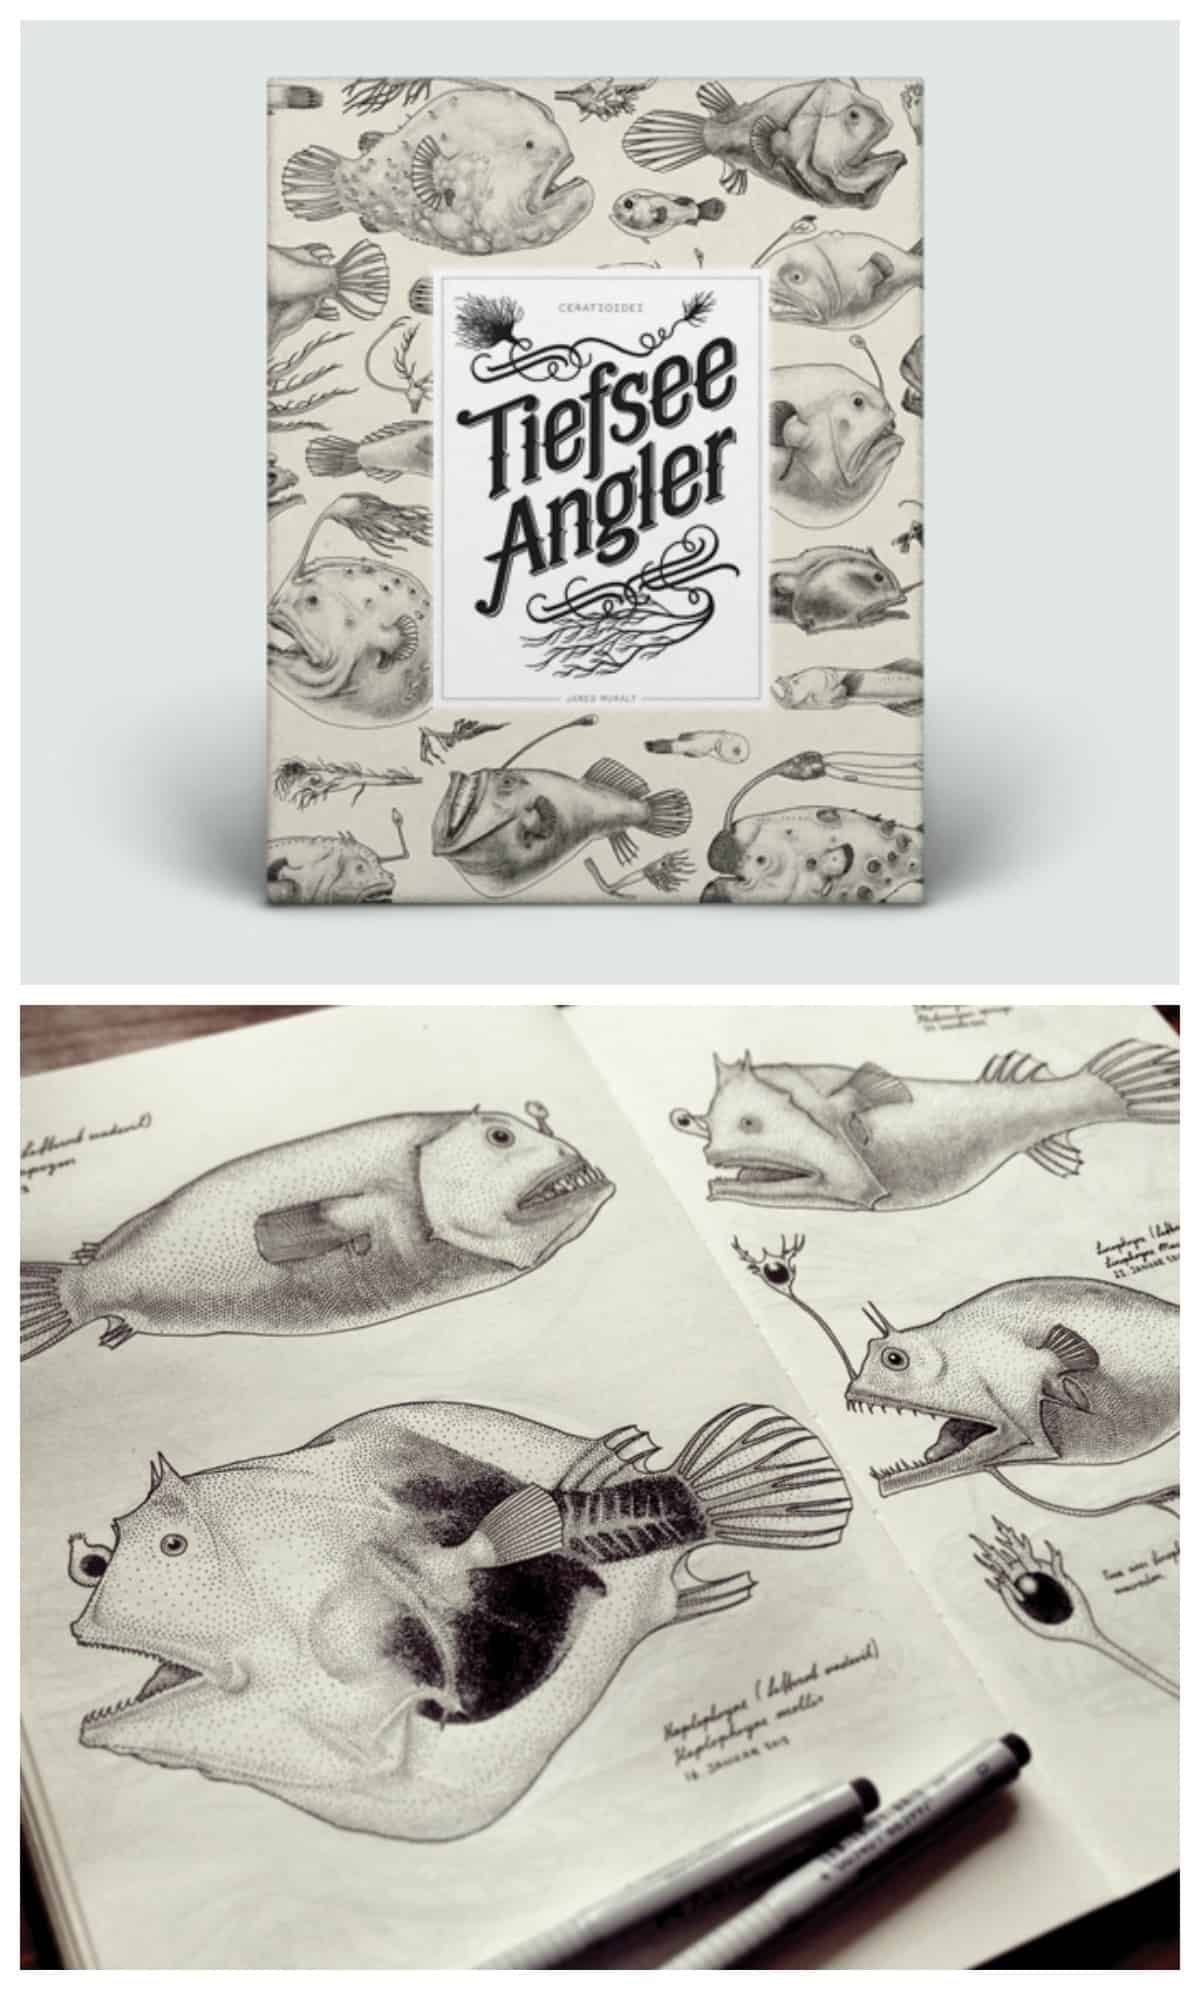 angler fish illustrated book